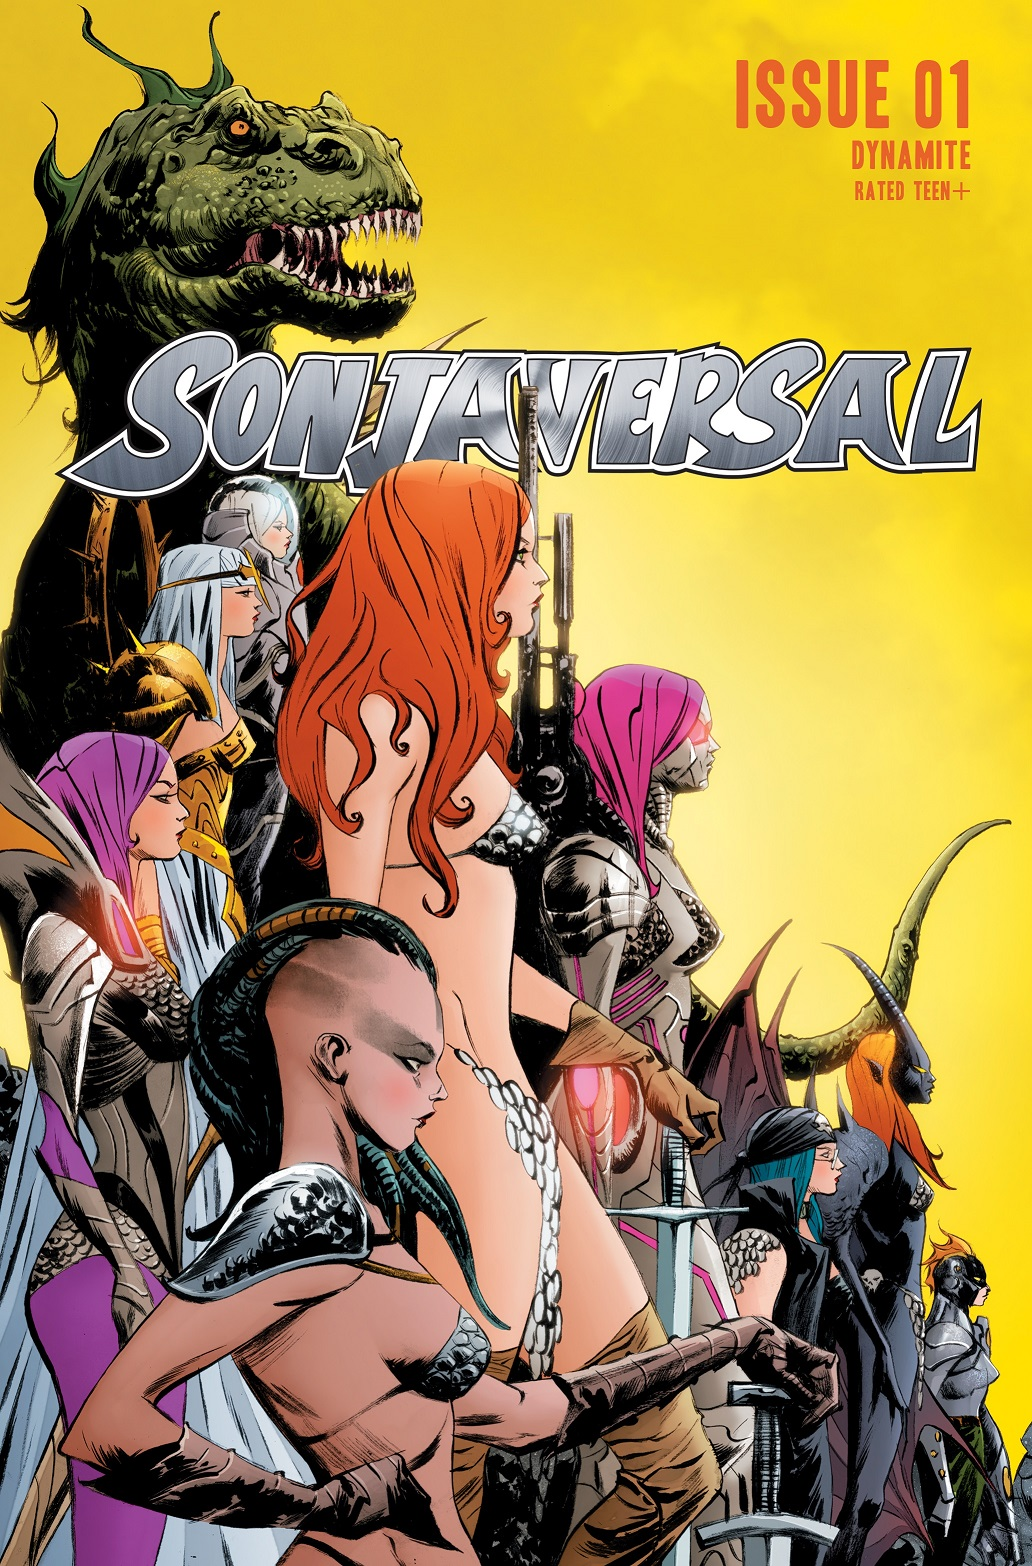 Sonjaversal-01-01011-A-Lee Experience an unlimited number of Red Sonja variants in SONJAVERSAL